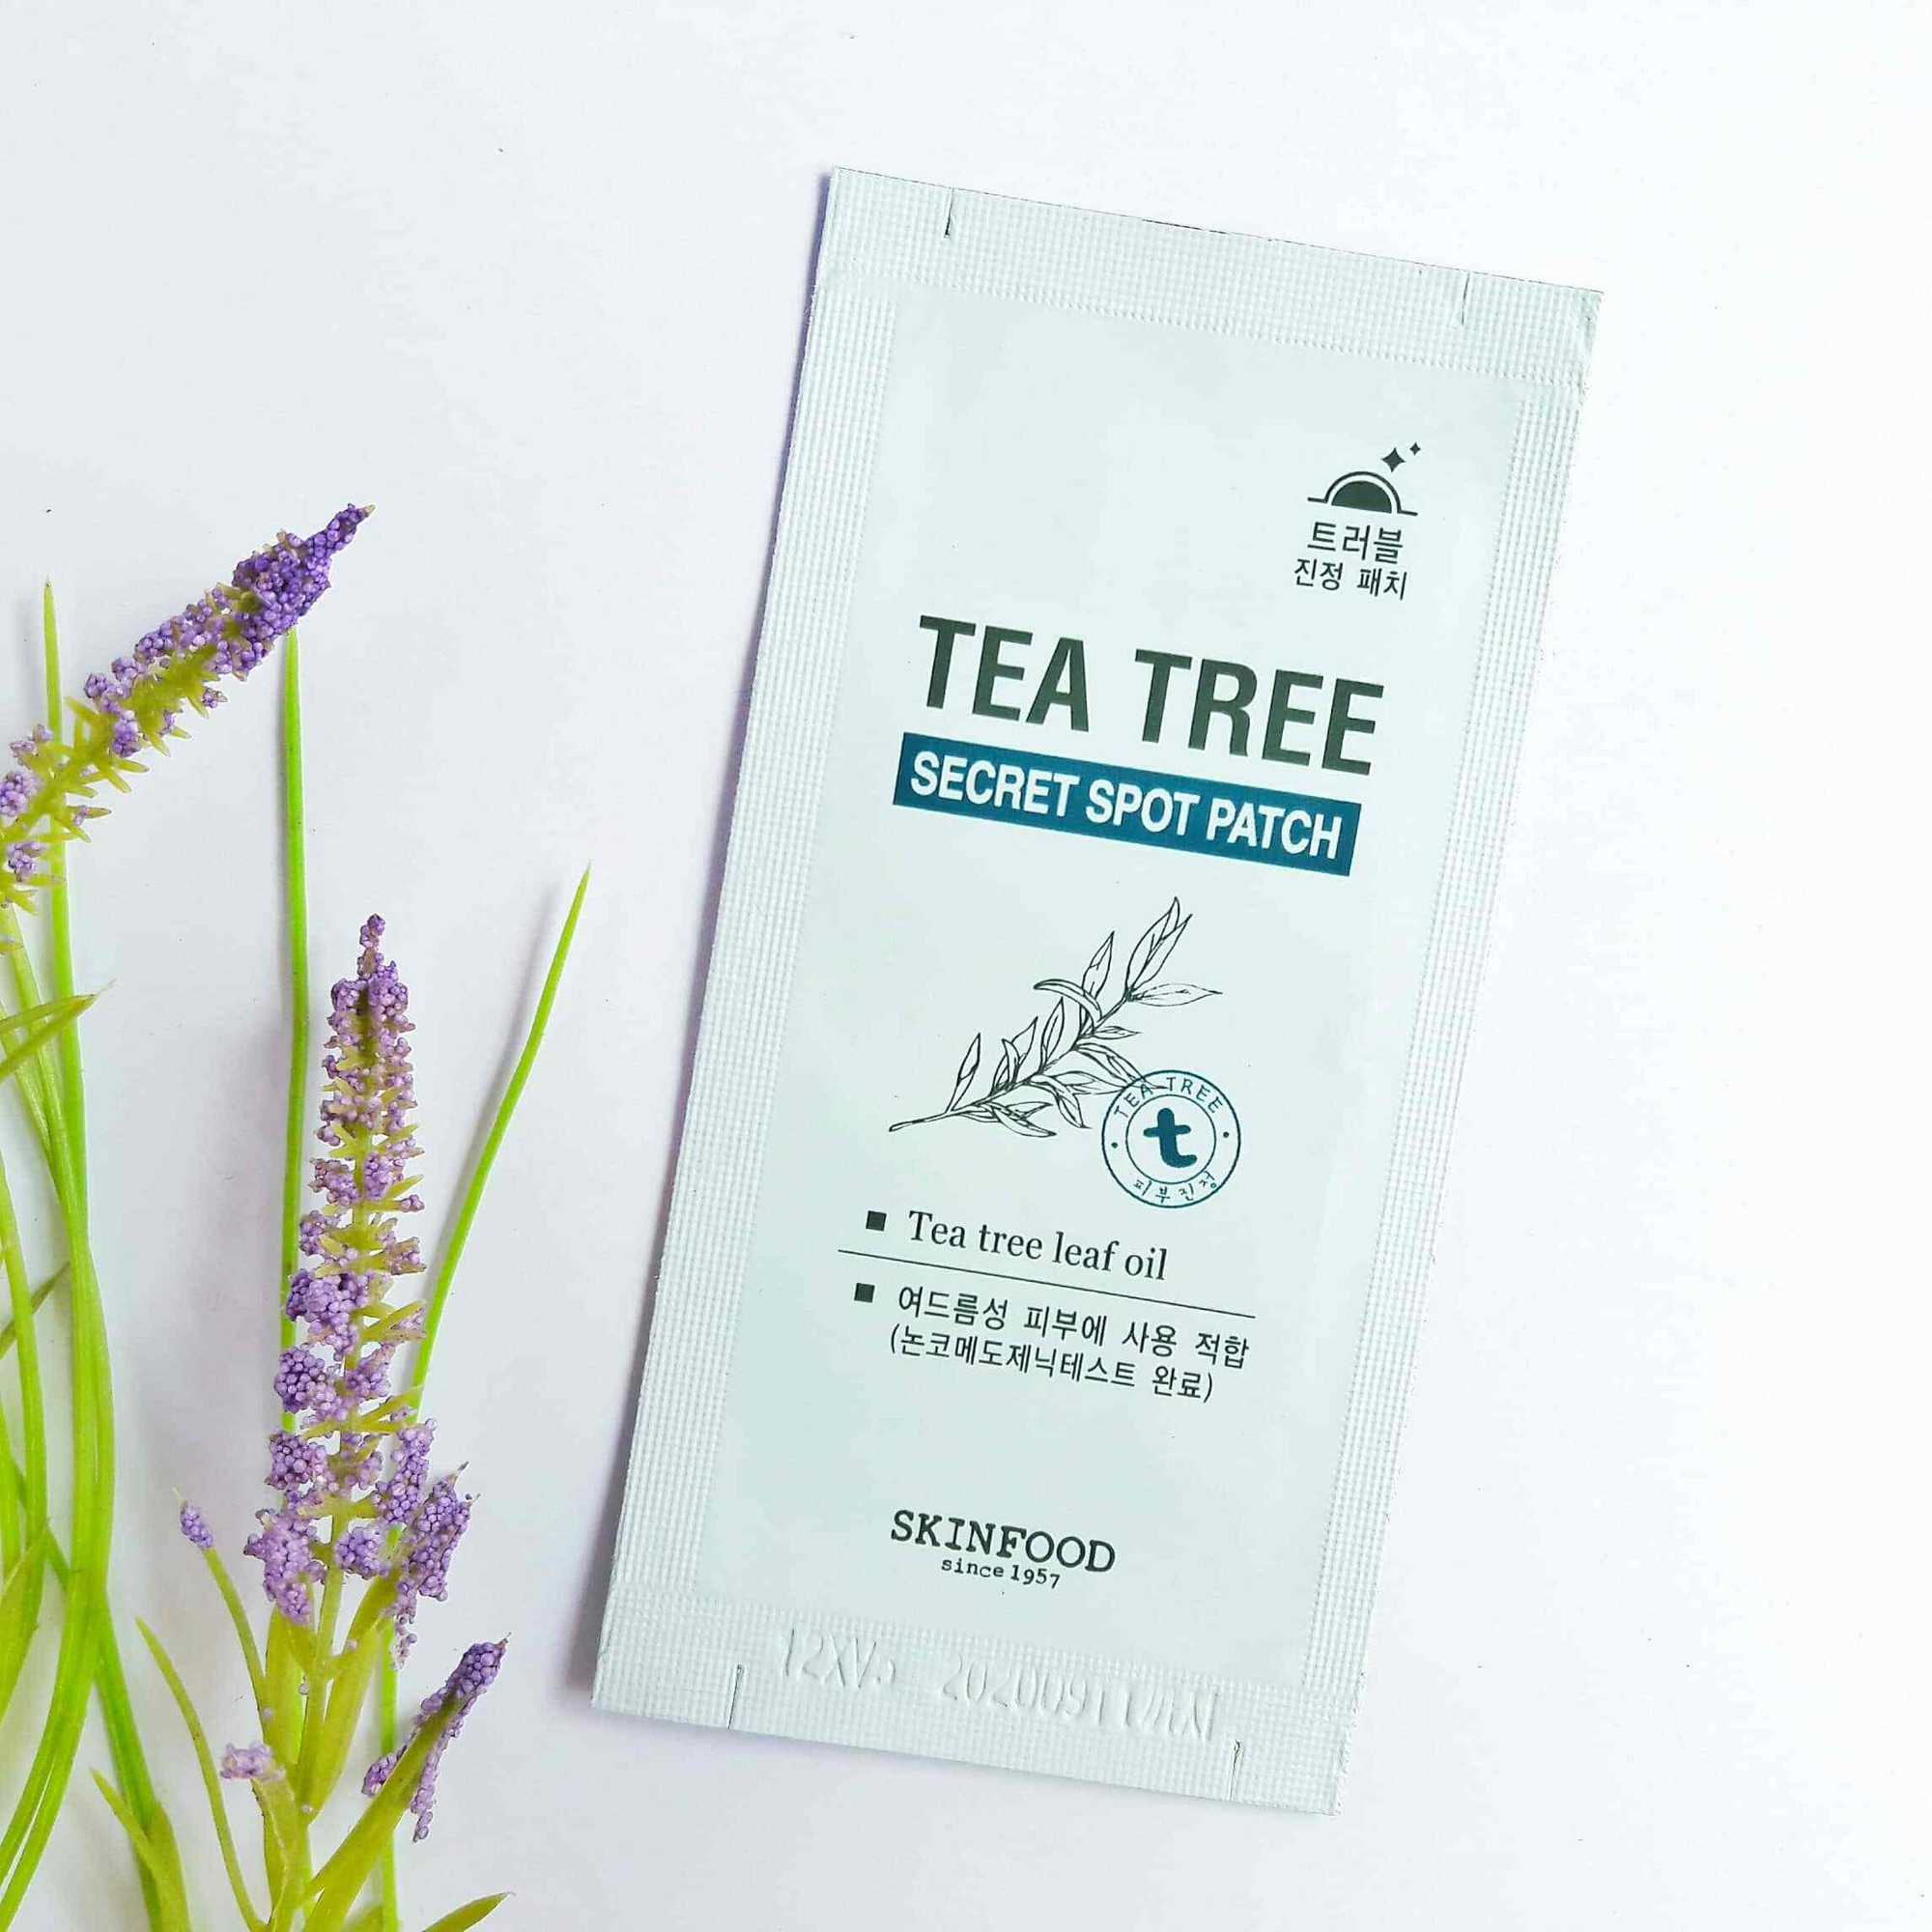 skinfood-tea-tree-secret-spot-patch-review-min